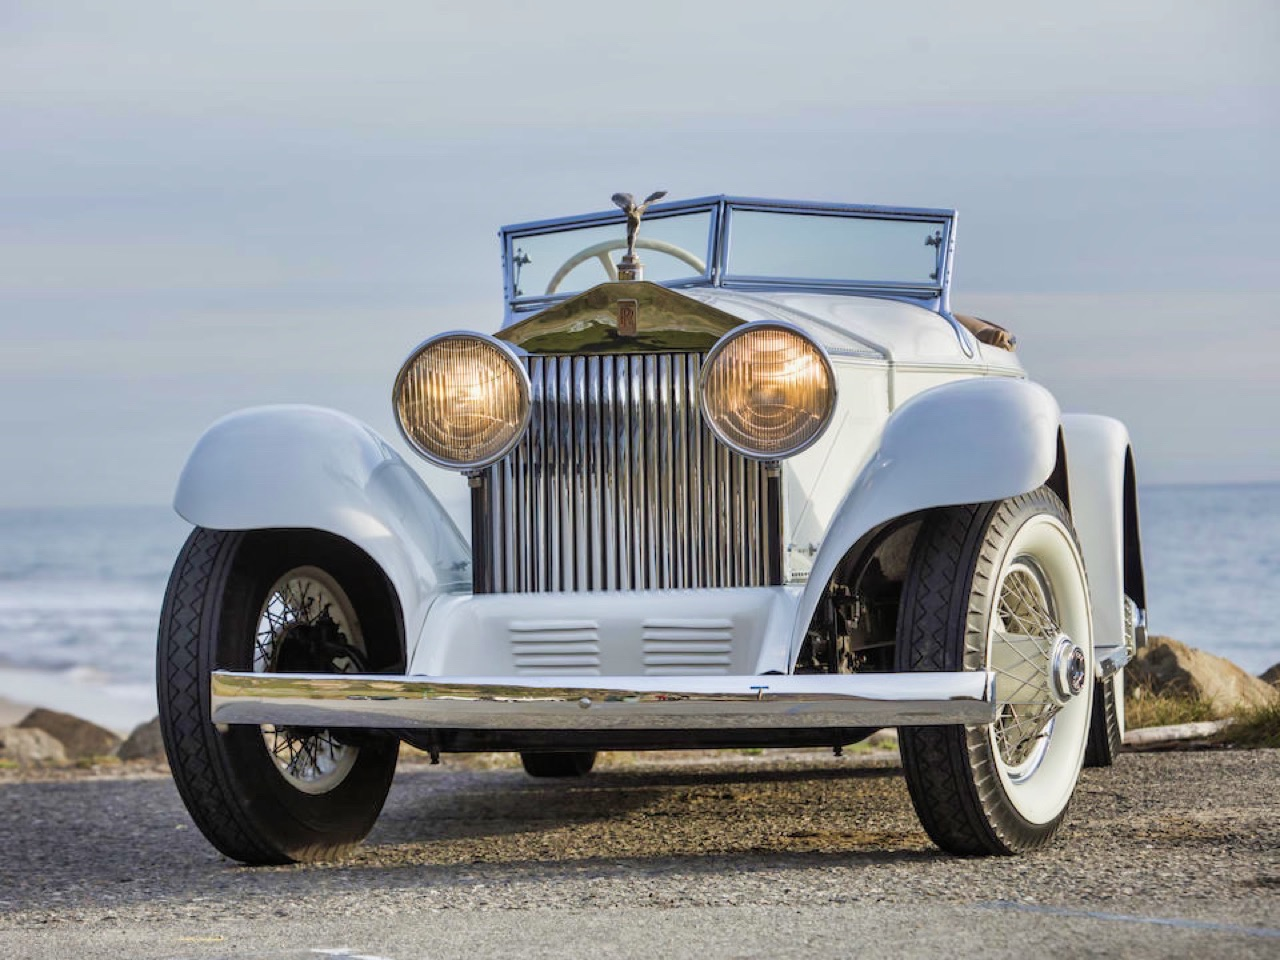 '24 Rolls Royce Silver Ghost Picadilly Special Roadster - Made in America ! 8